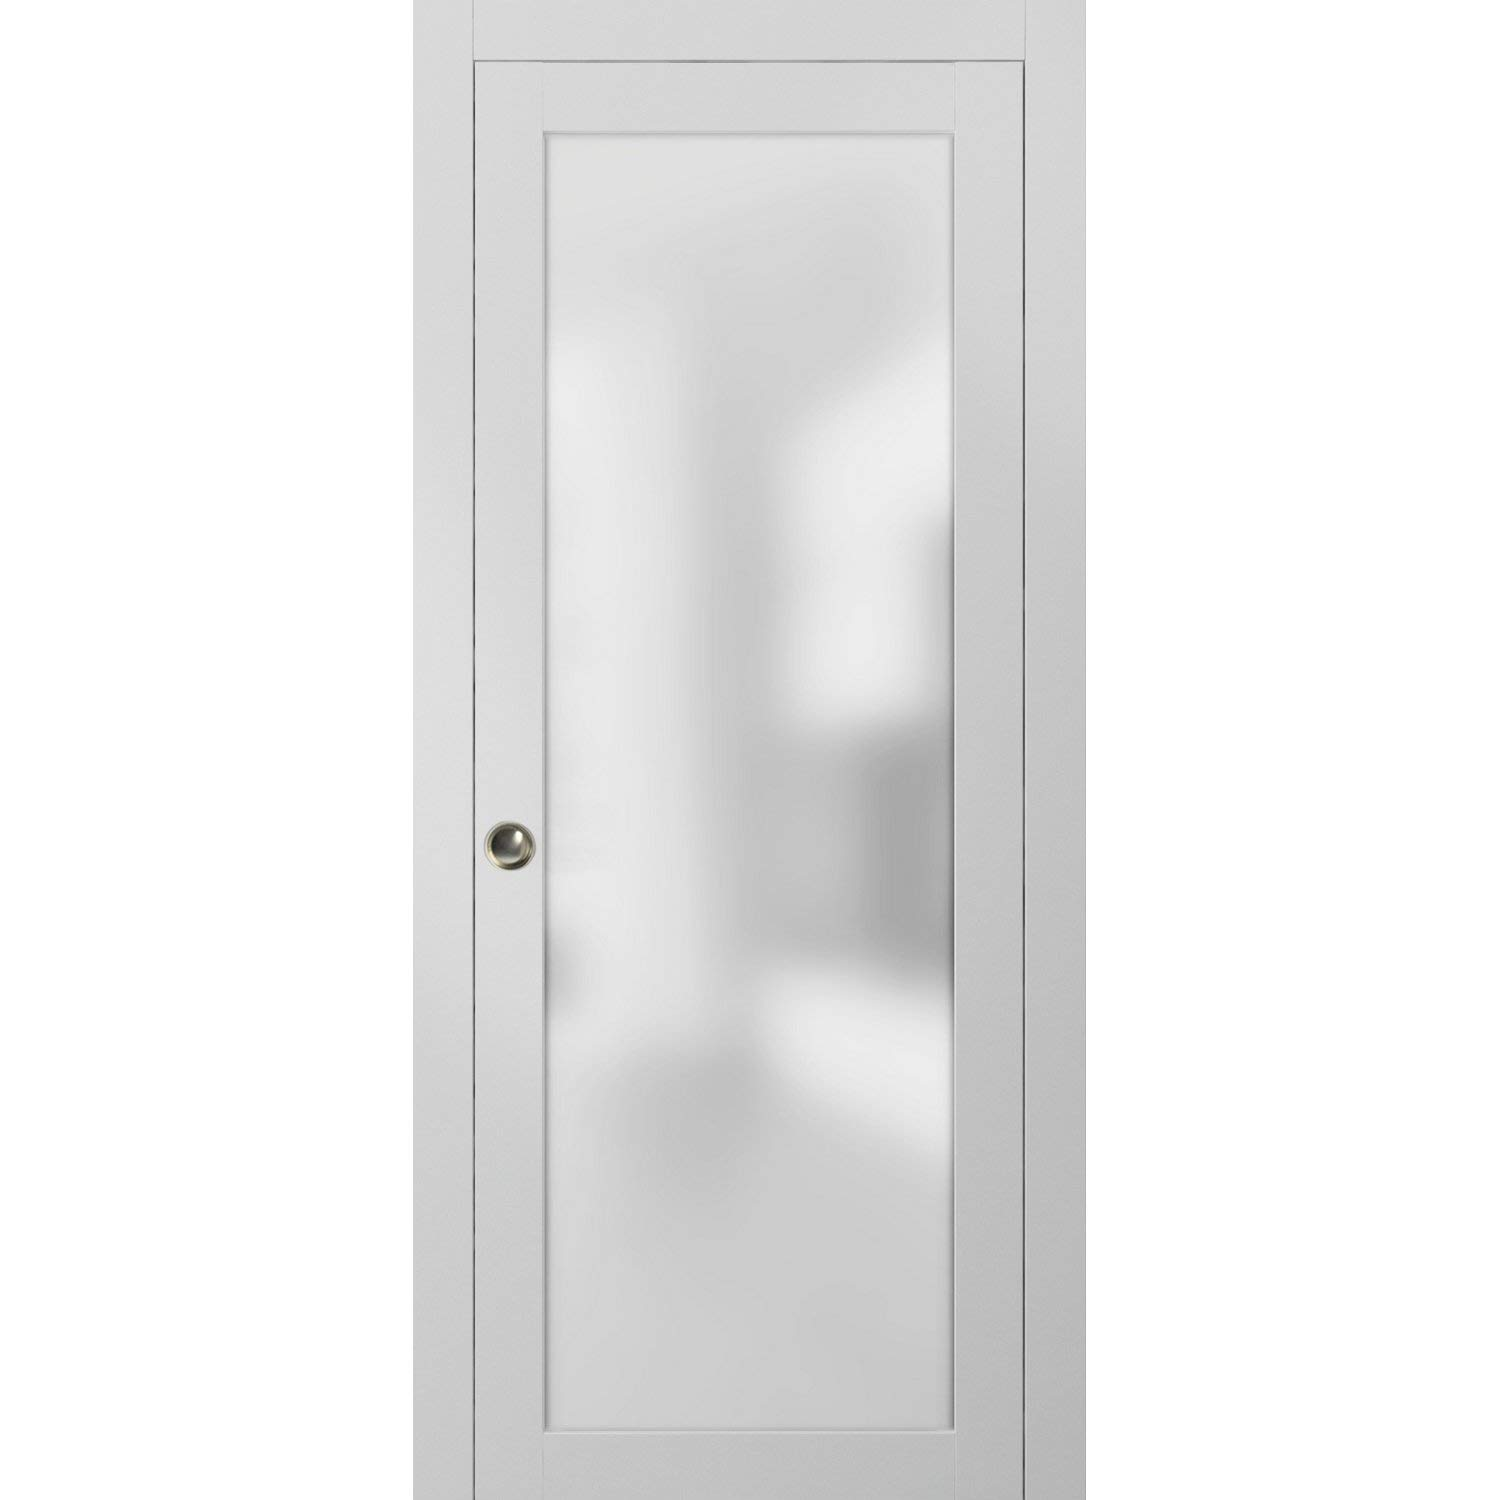 Frosted Glass Pocket Door 30 x 80 inches | Planum 2102 White Silk | Sturdy Heavy Frames Trims Pulls Track Hardware Set | Bedroom Bathroom Solid Wood Interior Slide Closet Panel |